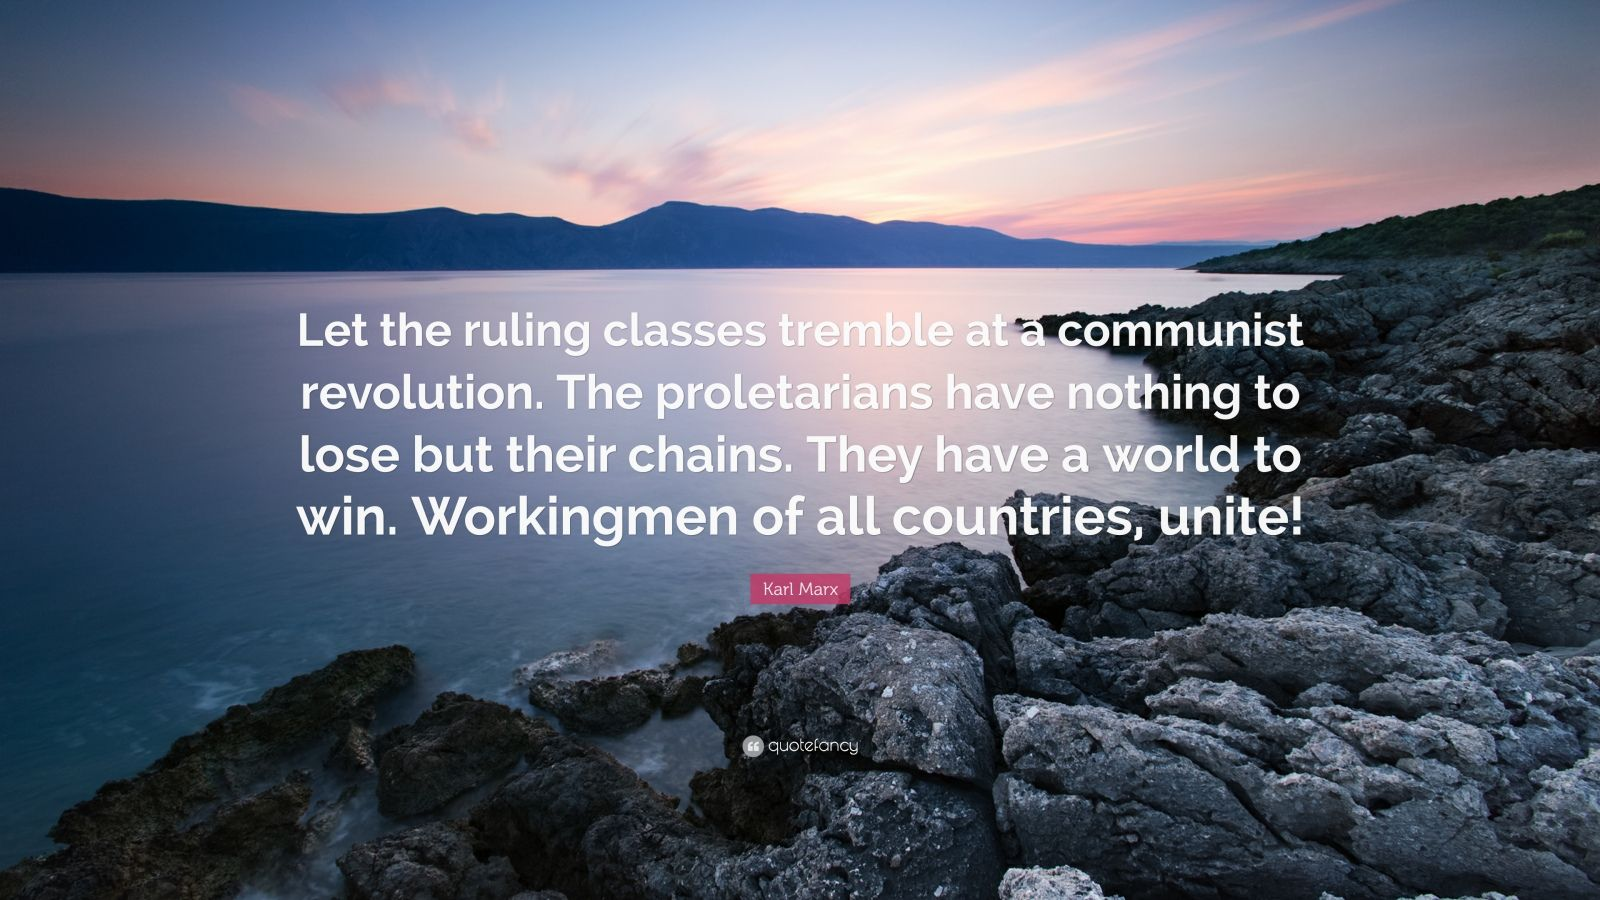 """Karl Marx Quote: """"Let the ruling classes tremble at a communist revolution. The proletarians have nothing to lose but their chains. They have a world to win. Workingmen of all countries, unite!"""""""